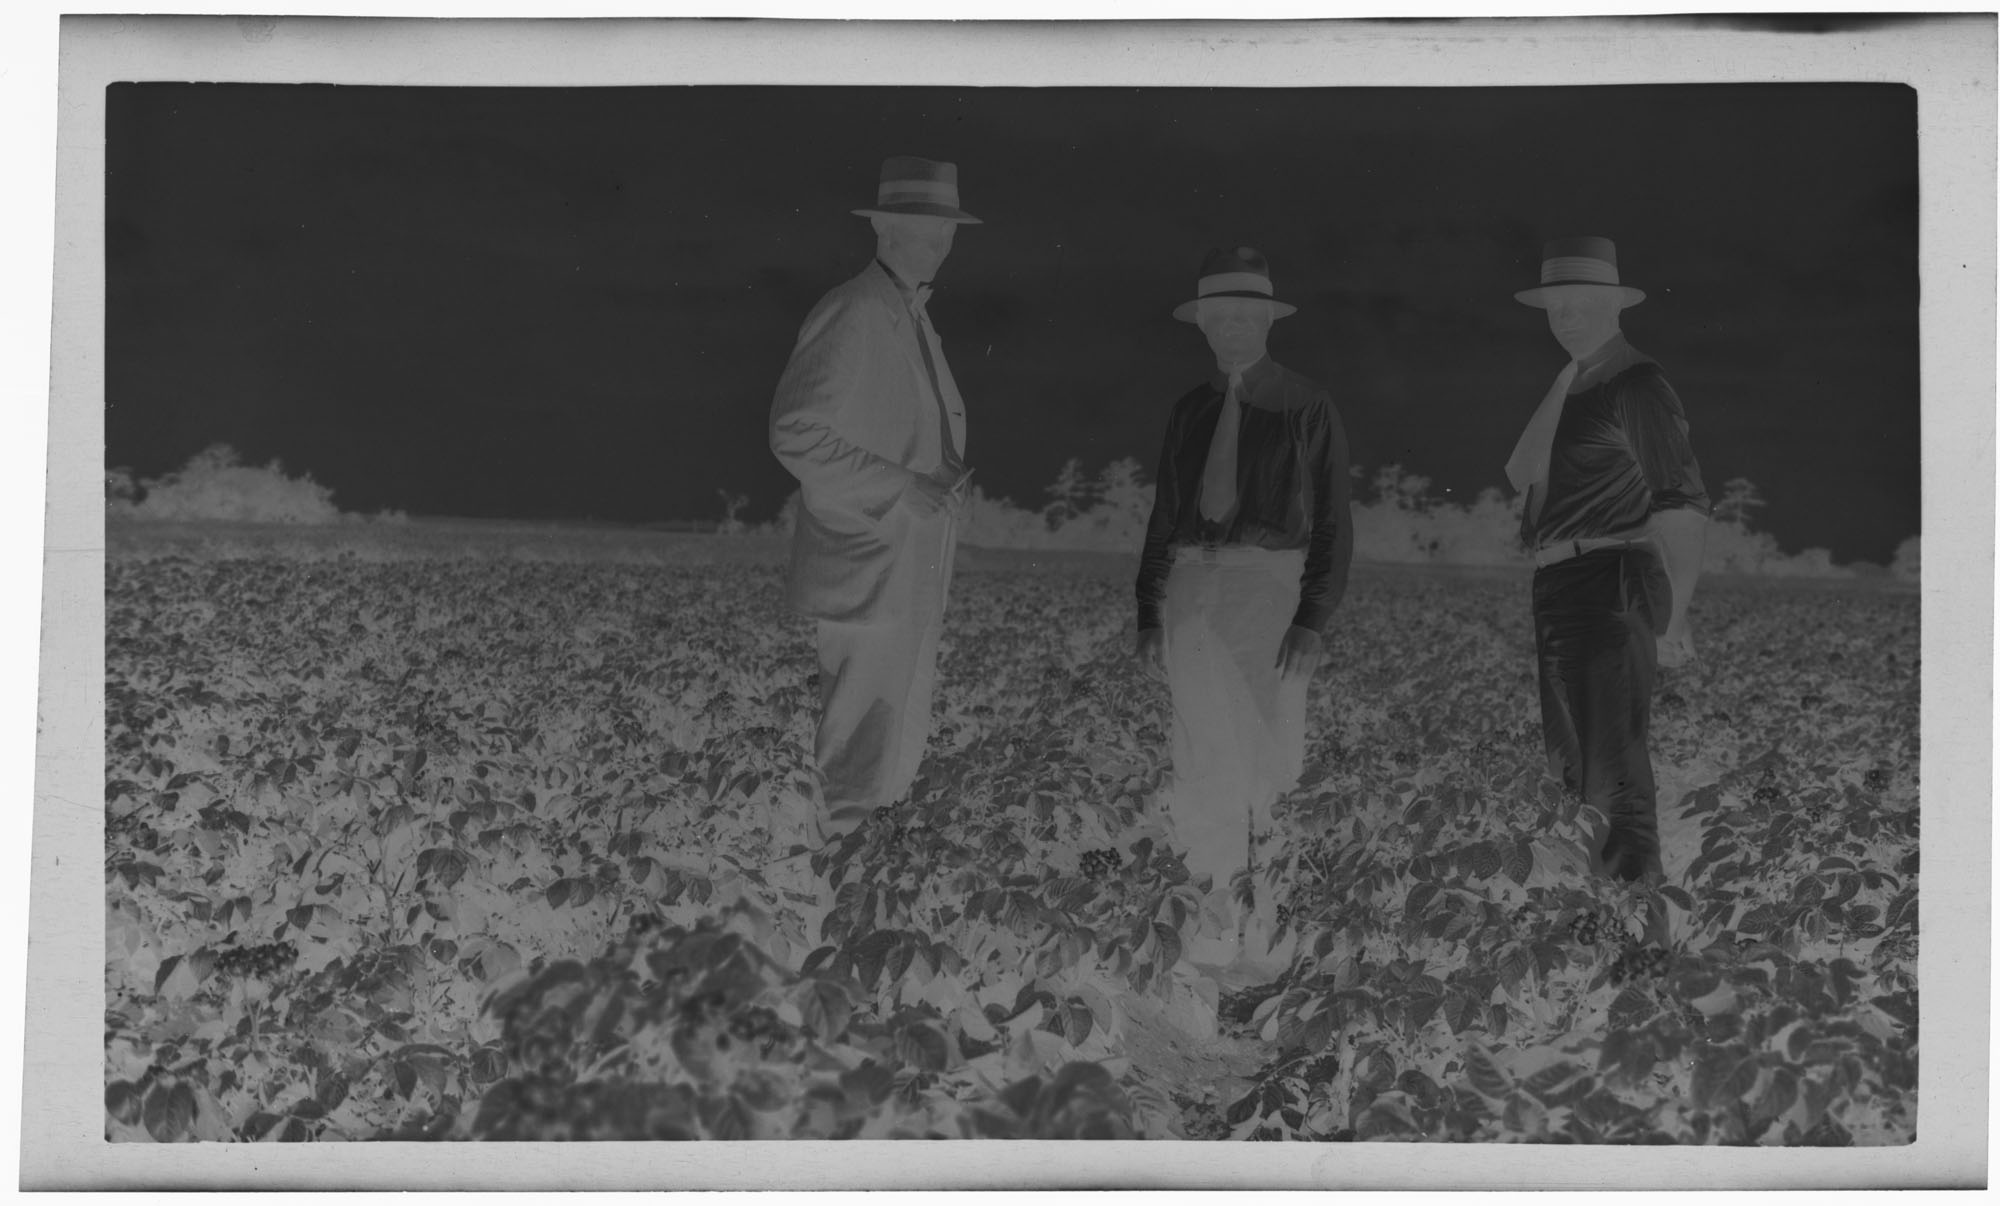 Negative of Three Men and a Field